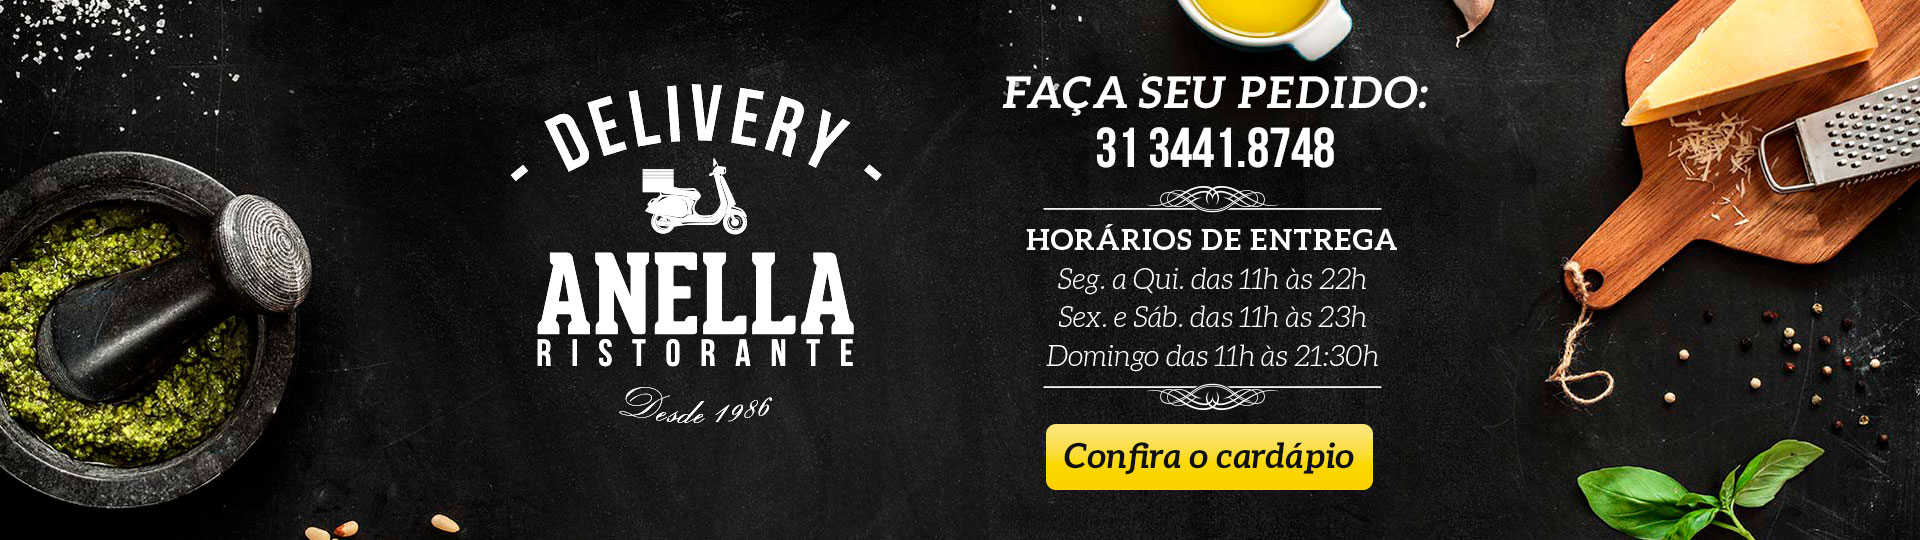 banner-anella-delivery